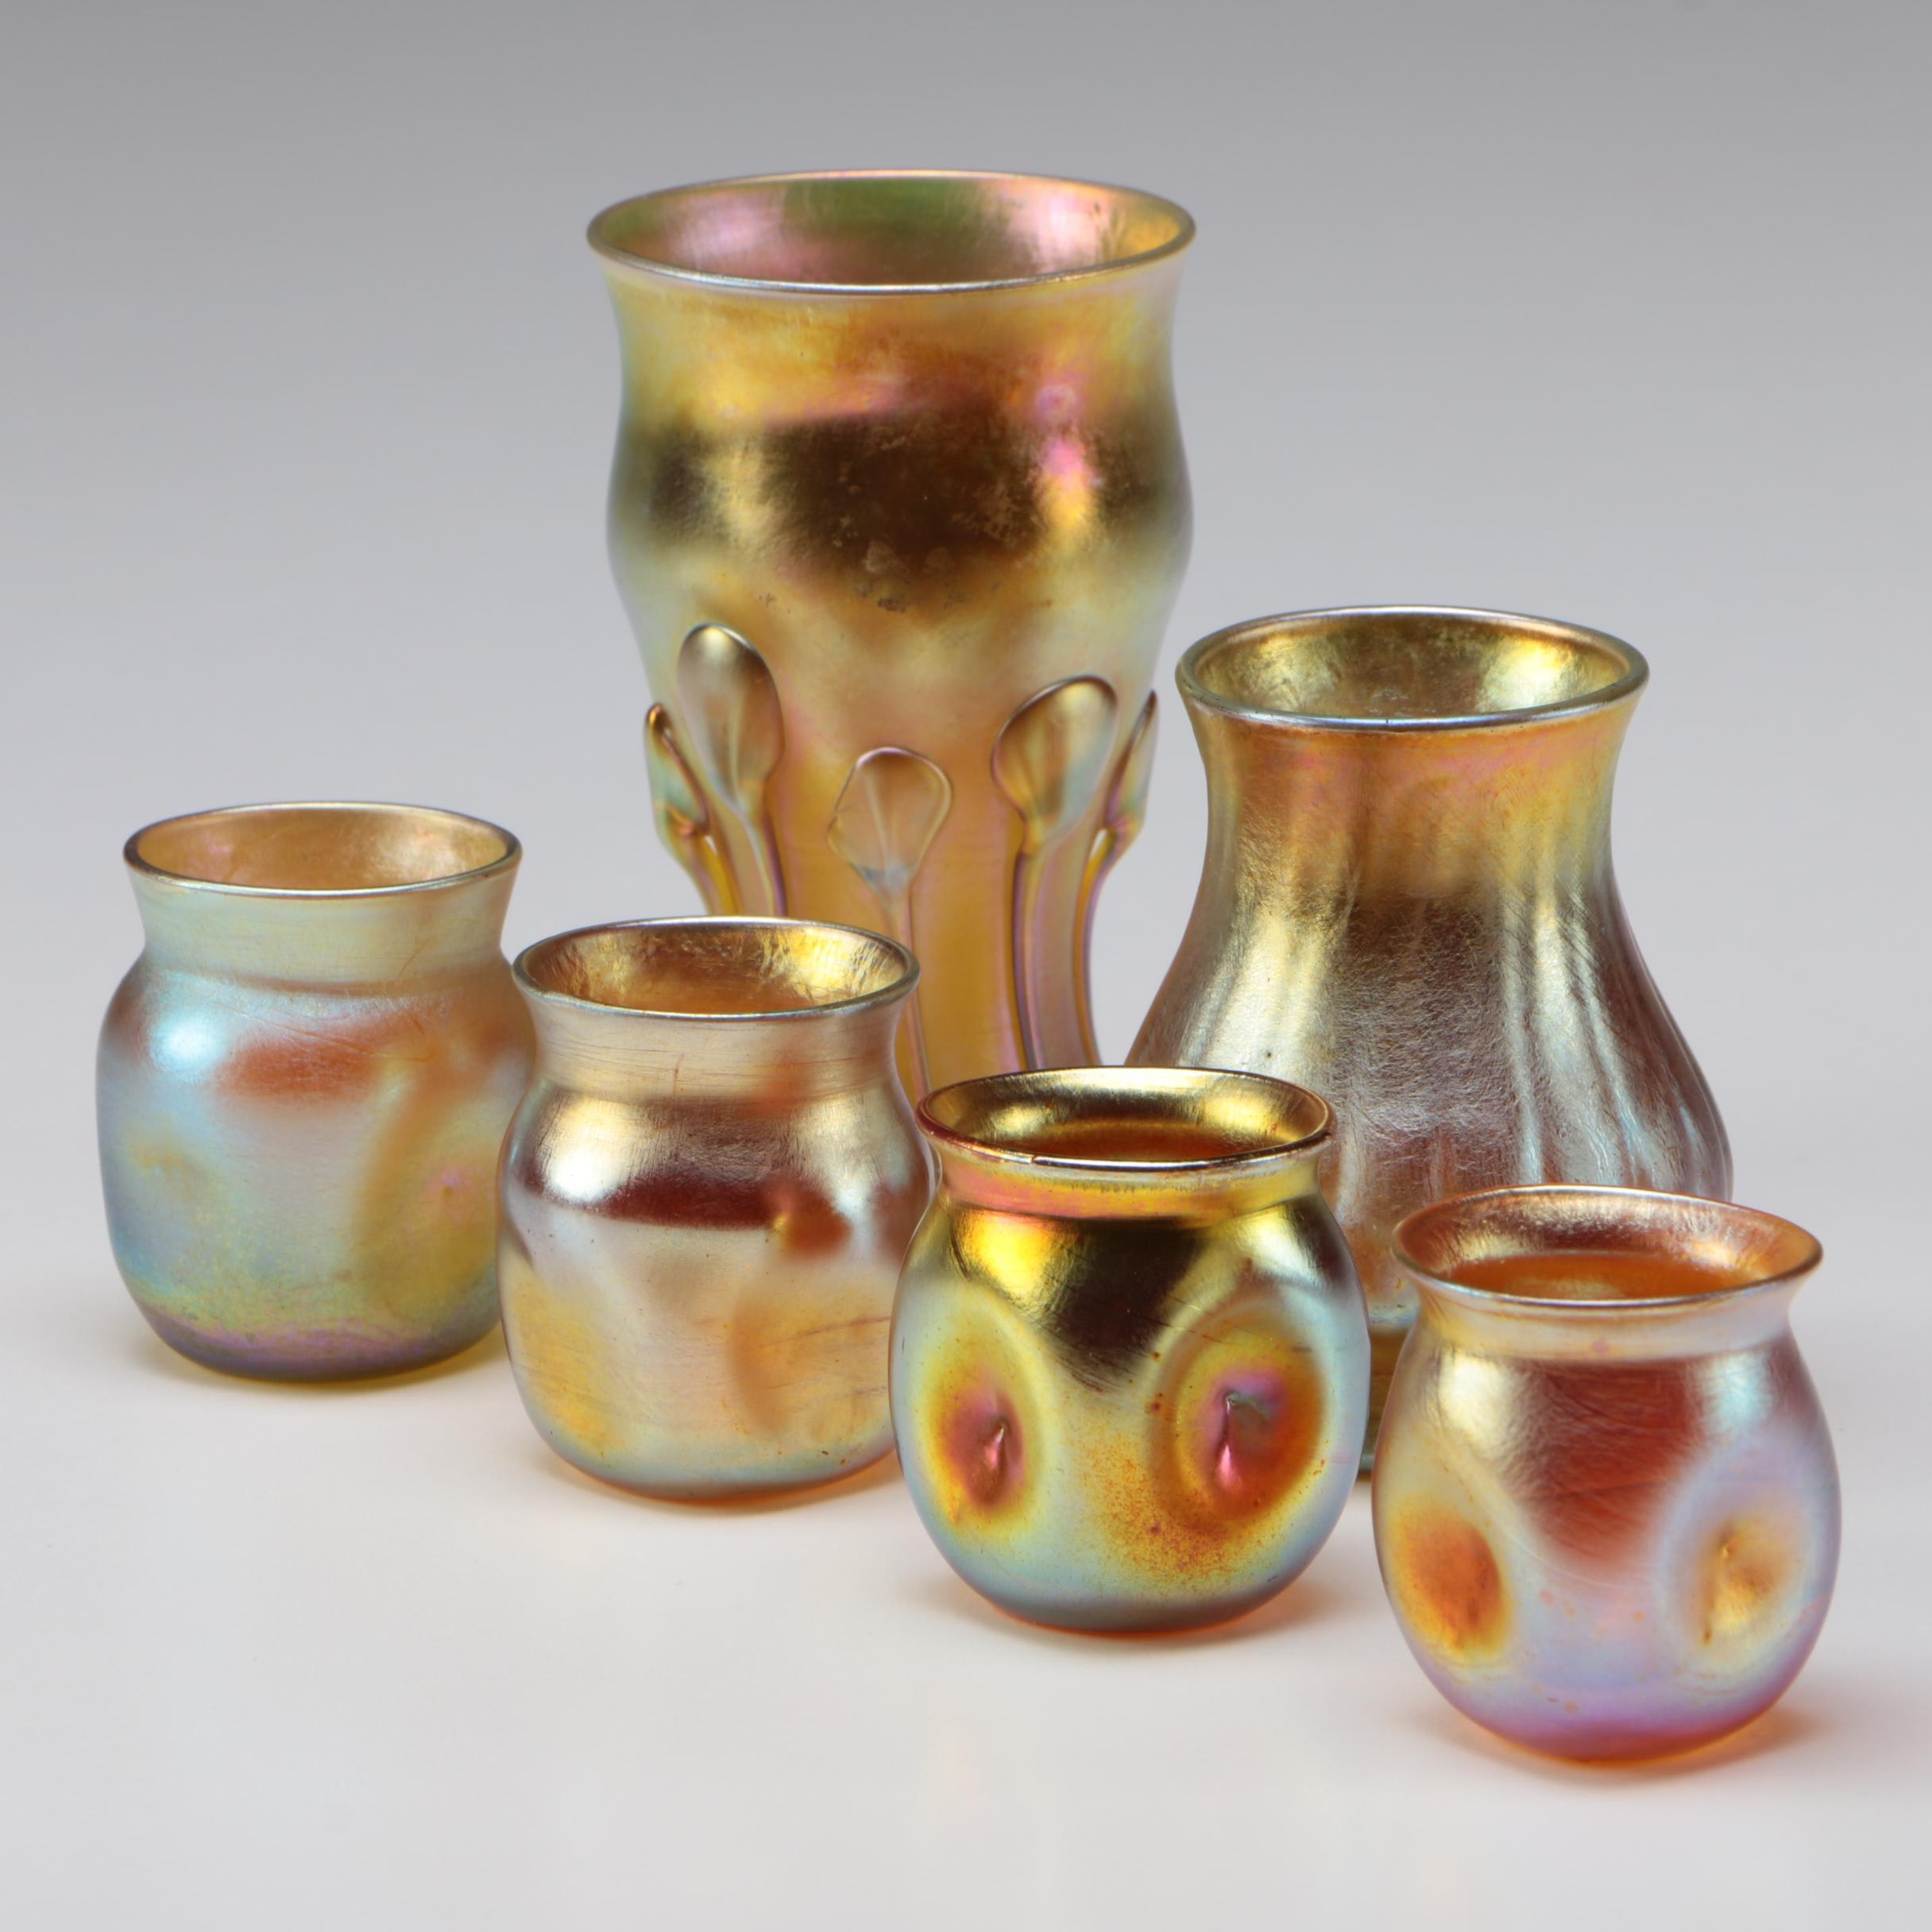 Louis Comfort Tiffany Favrile Art Glass Cordials and Vases, 1890s - 1900s